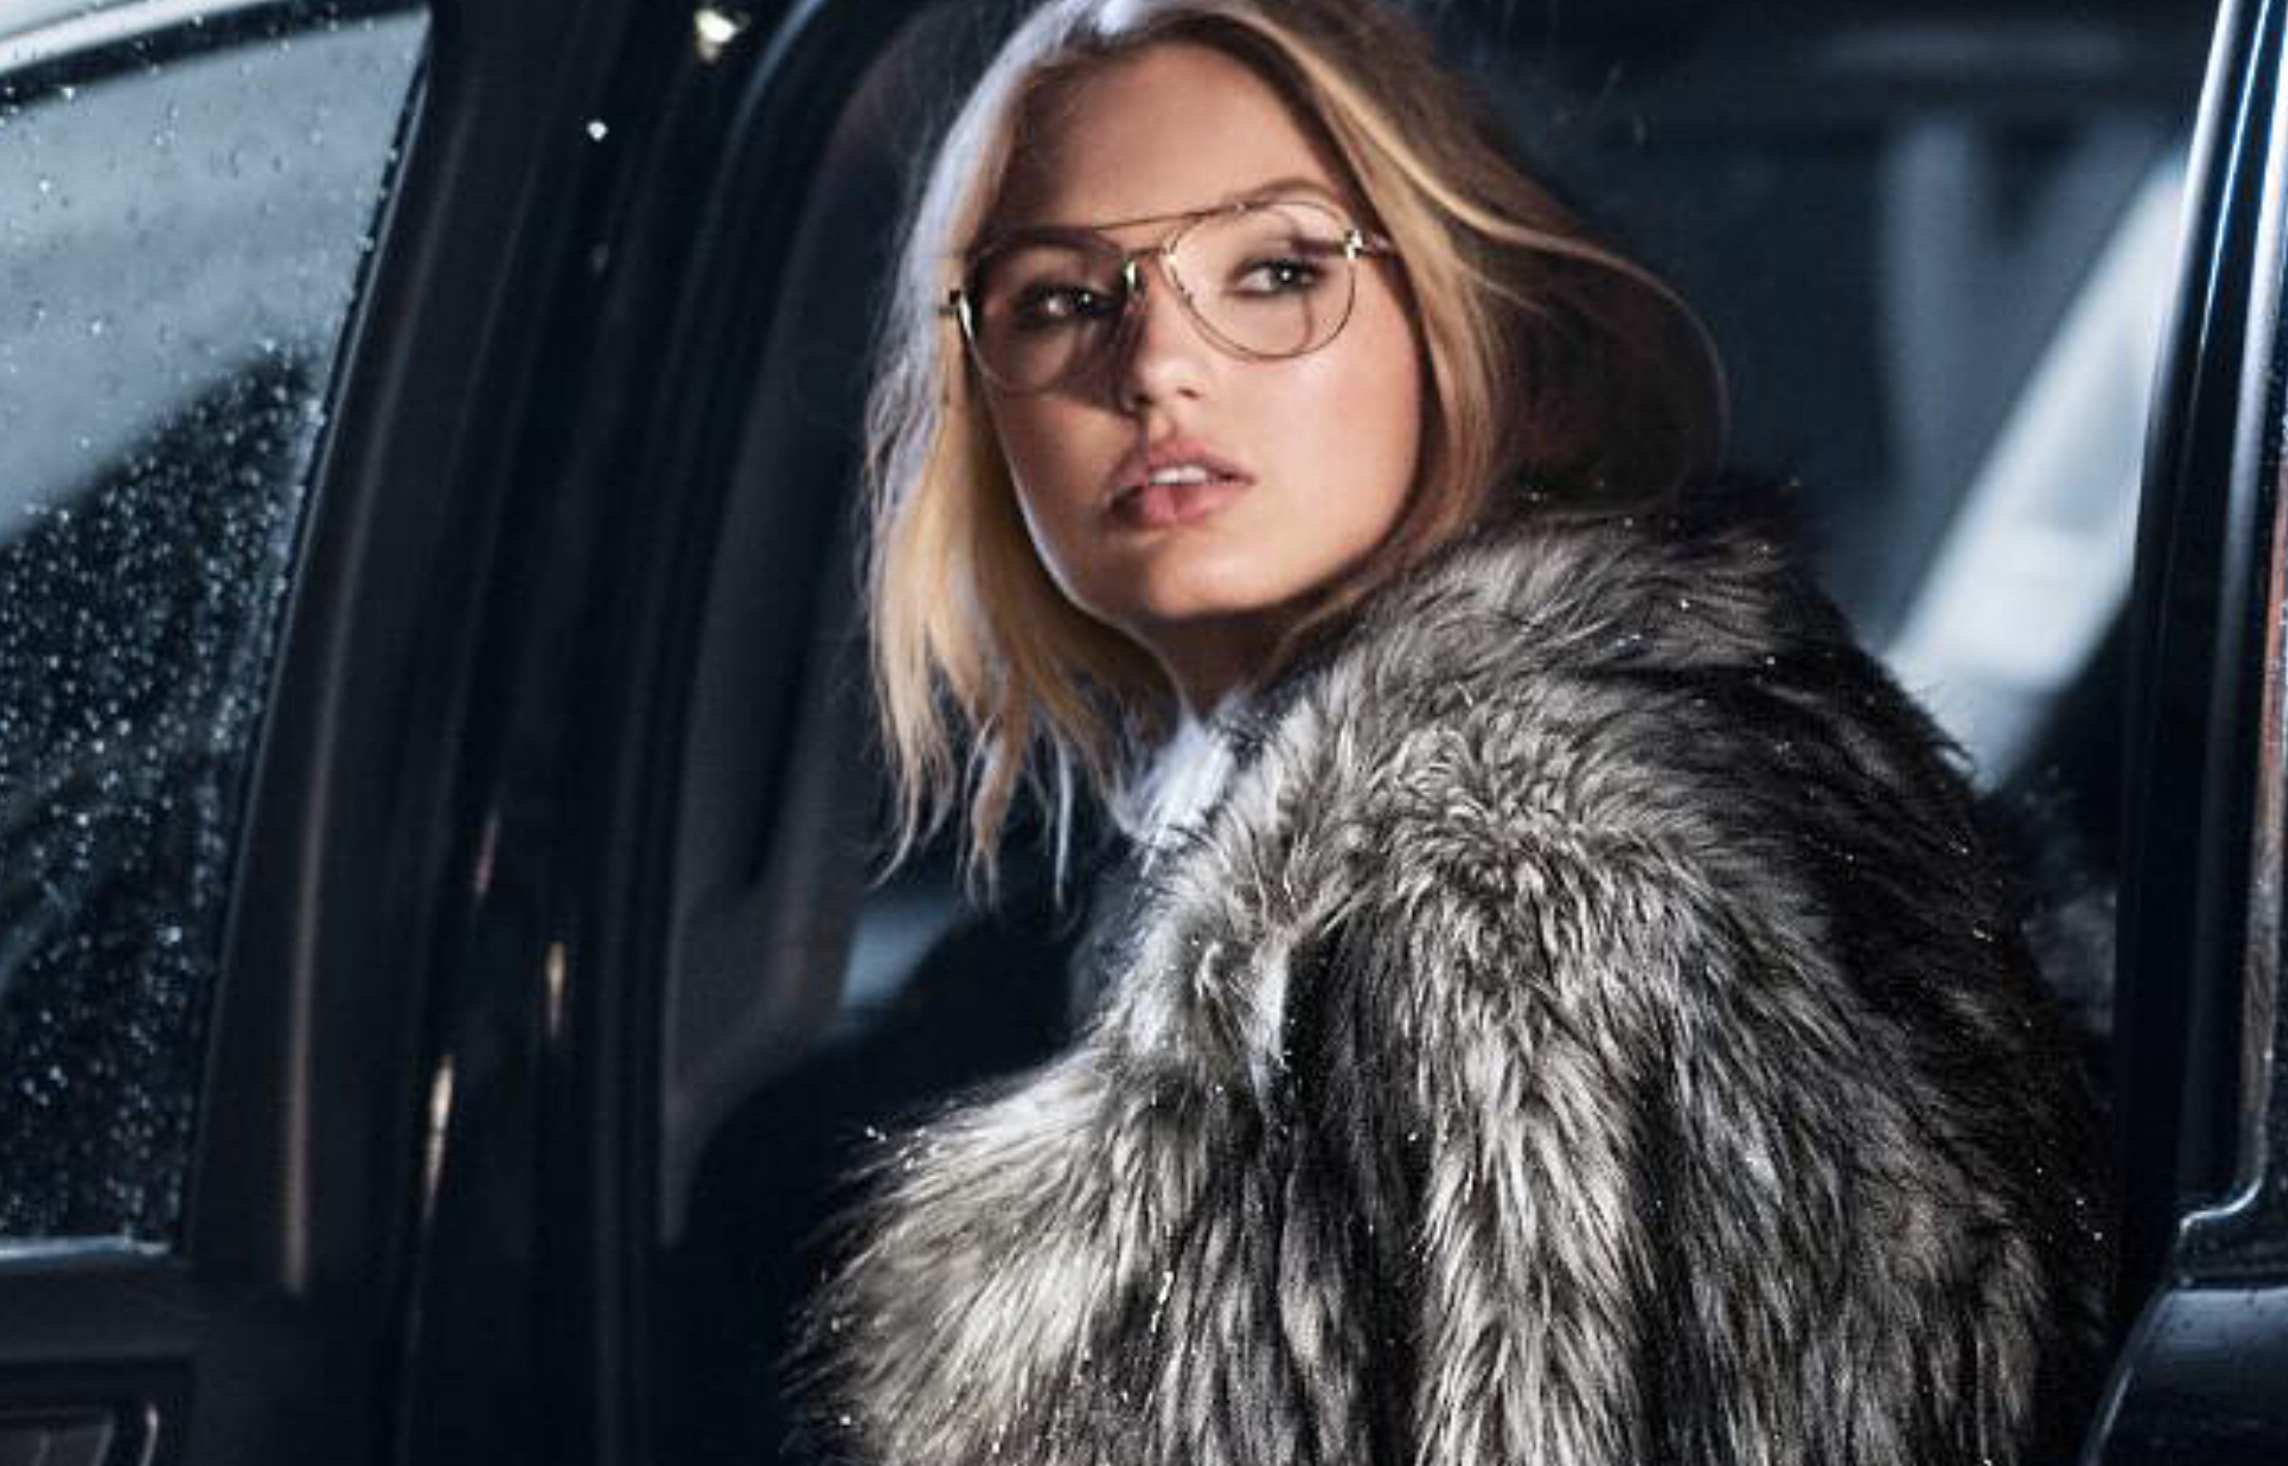 U.S. fashion brand Michael Kors to stop using animal fur